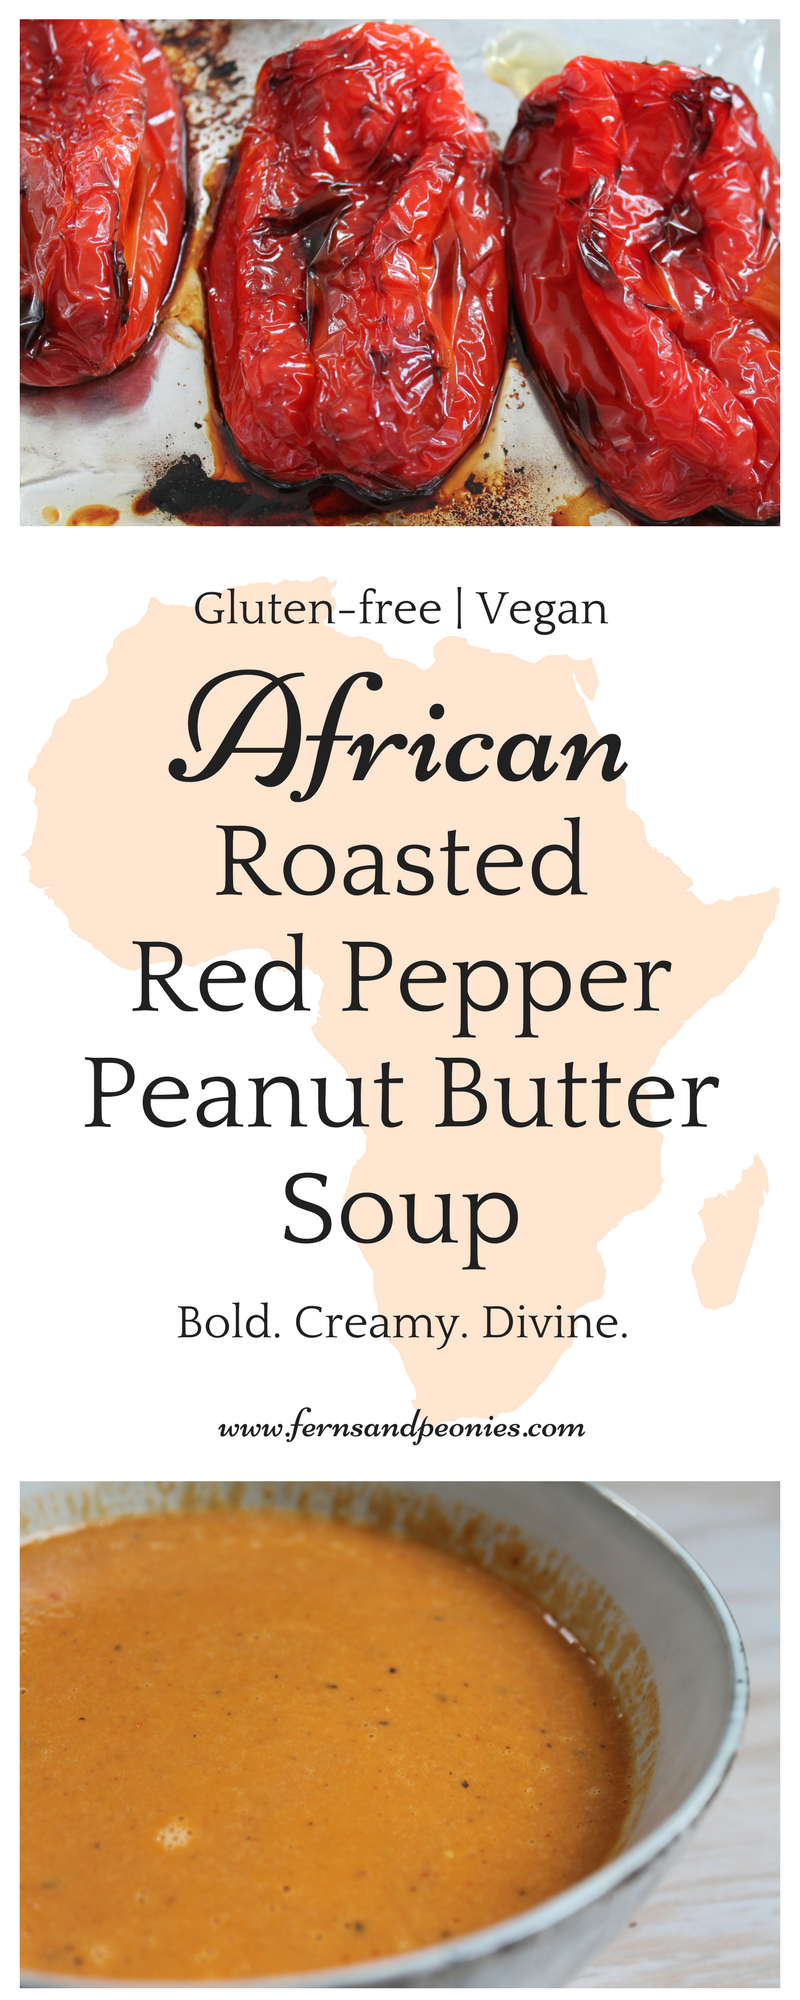 Gluten-free and vegan African Roasted Red Pepper Peanut Butter Soup. Bold and creamy flavors inspired from a 20-year old trip to West Africa. Bold and creamy flavors that are sure to wow. Find this recipe and more at www.fernsandpeonies.com